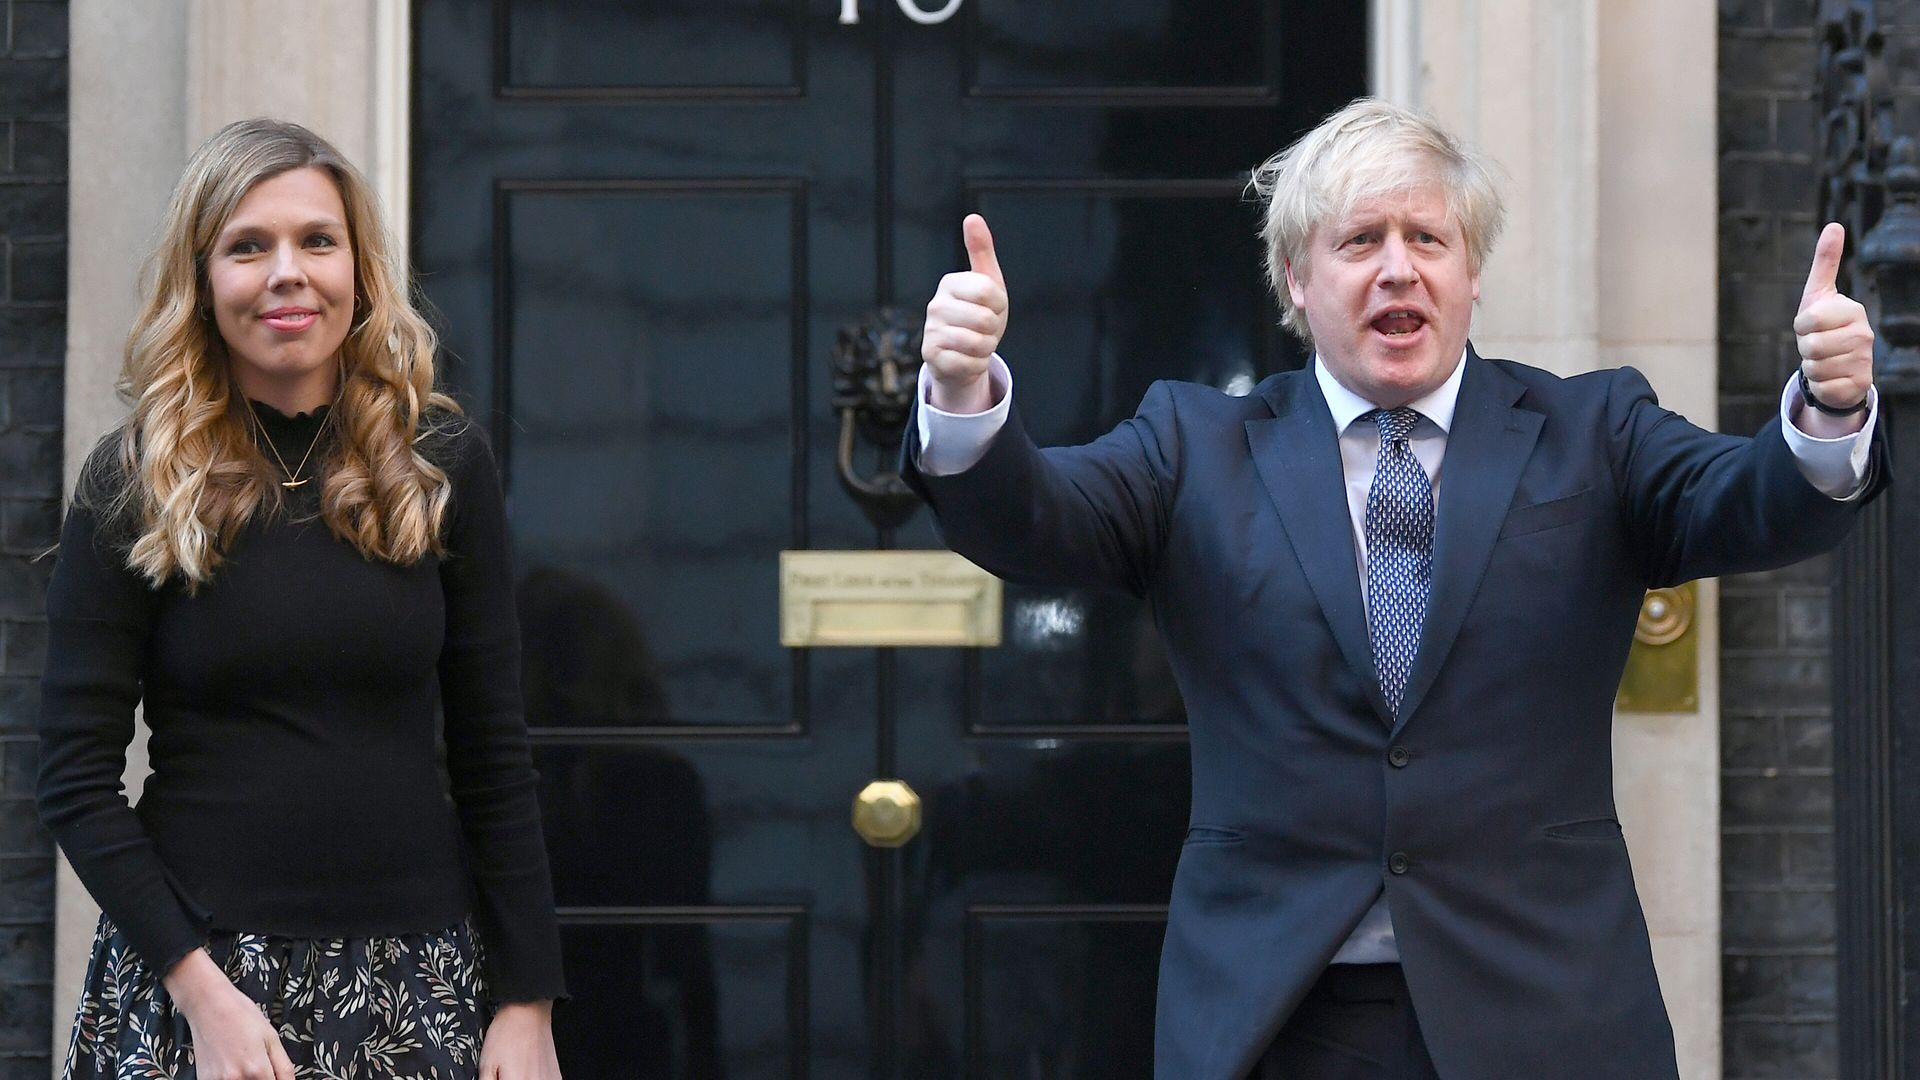 Prime Minister Boris Johnson and his partner Carrie Symonds, stand in Downing Street, London, to join in the applause during Clap for Carers - Credit: PA